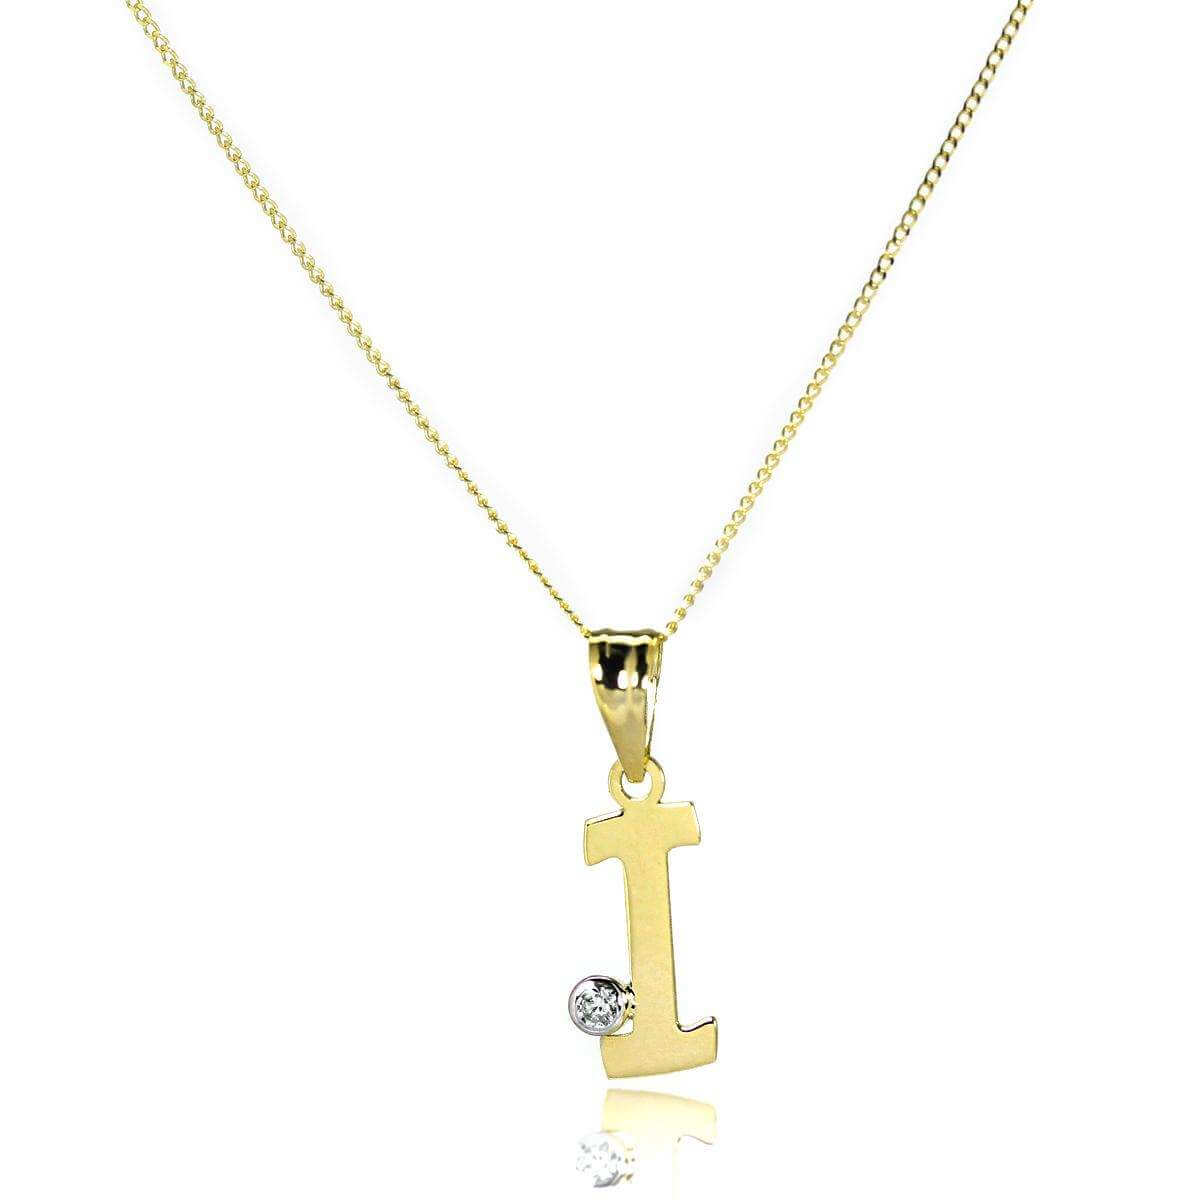 9ct Gold Letter I Pendant with CZ Crystal